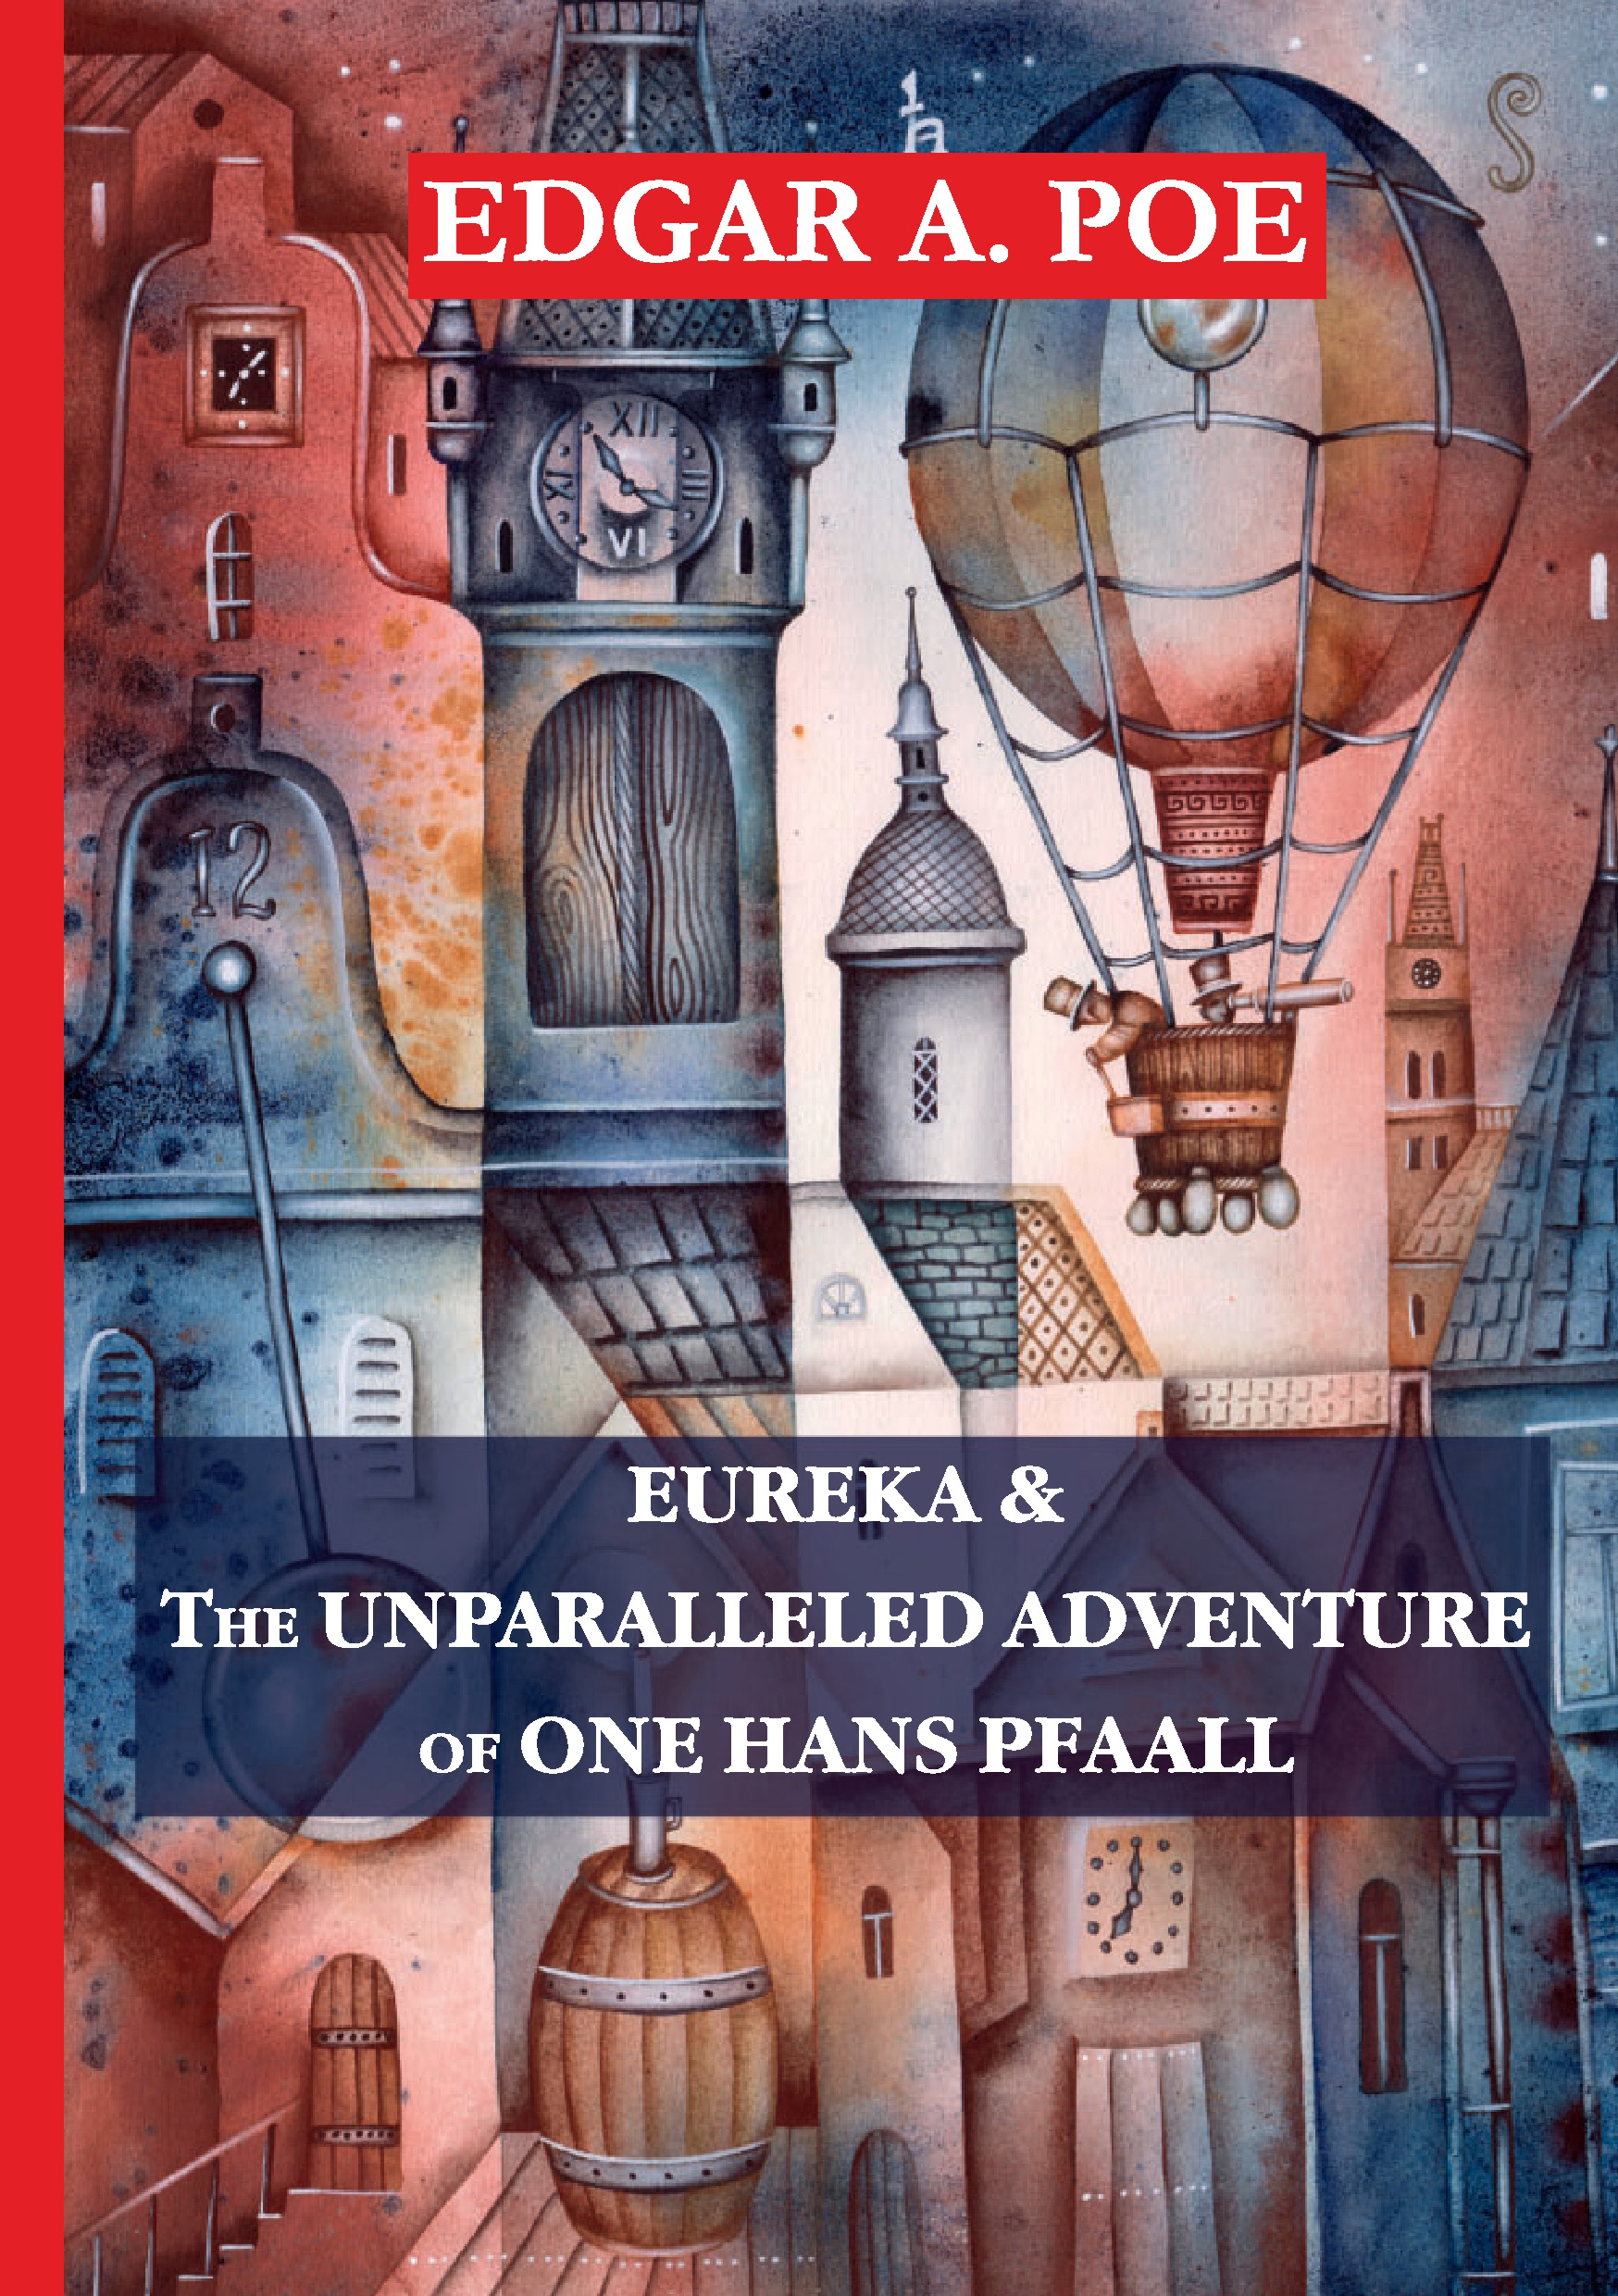 Эдгар Аллан По Eureka & The Unparalleled Adventure of One Hans Pfaall эдгар аллан по the purloined letter